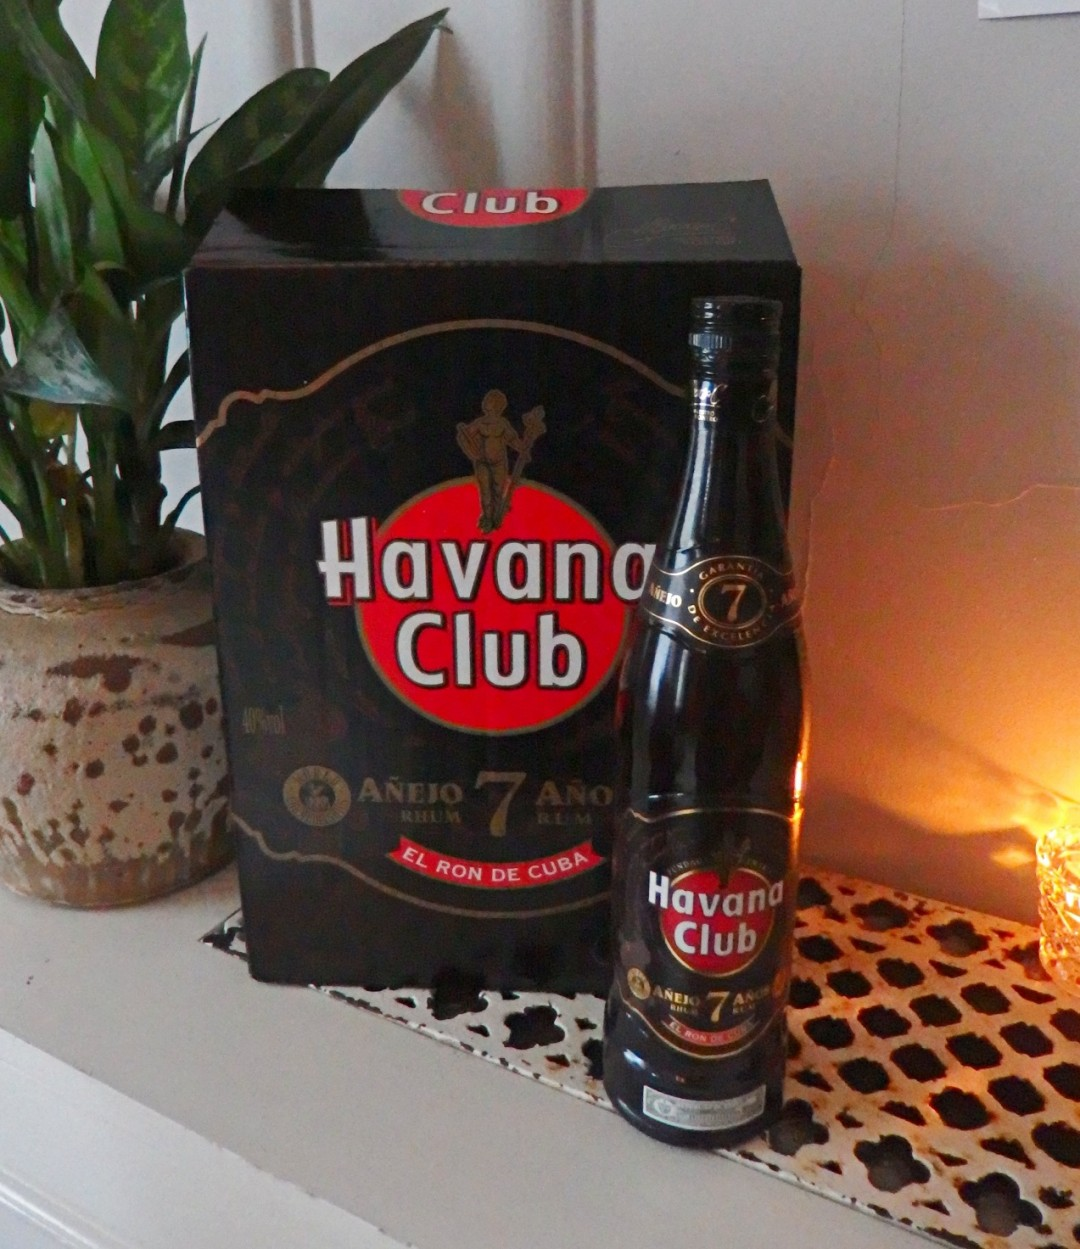 Havana Club Pop-Up Kettner's London